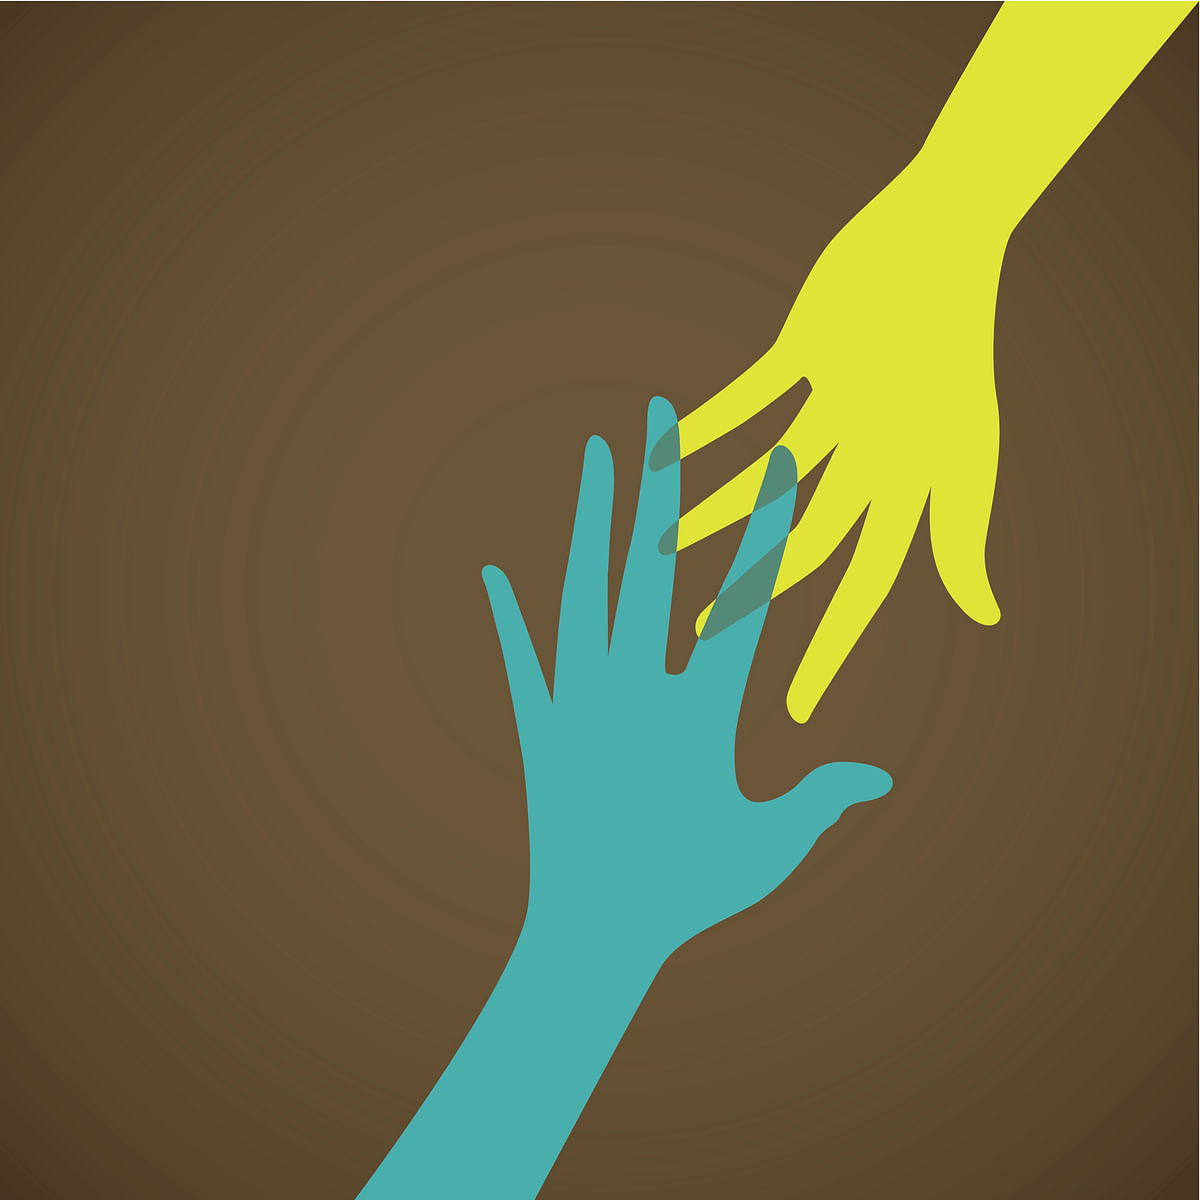 When you extend your support to a bereaved person, you alleviate their stress.